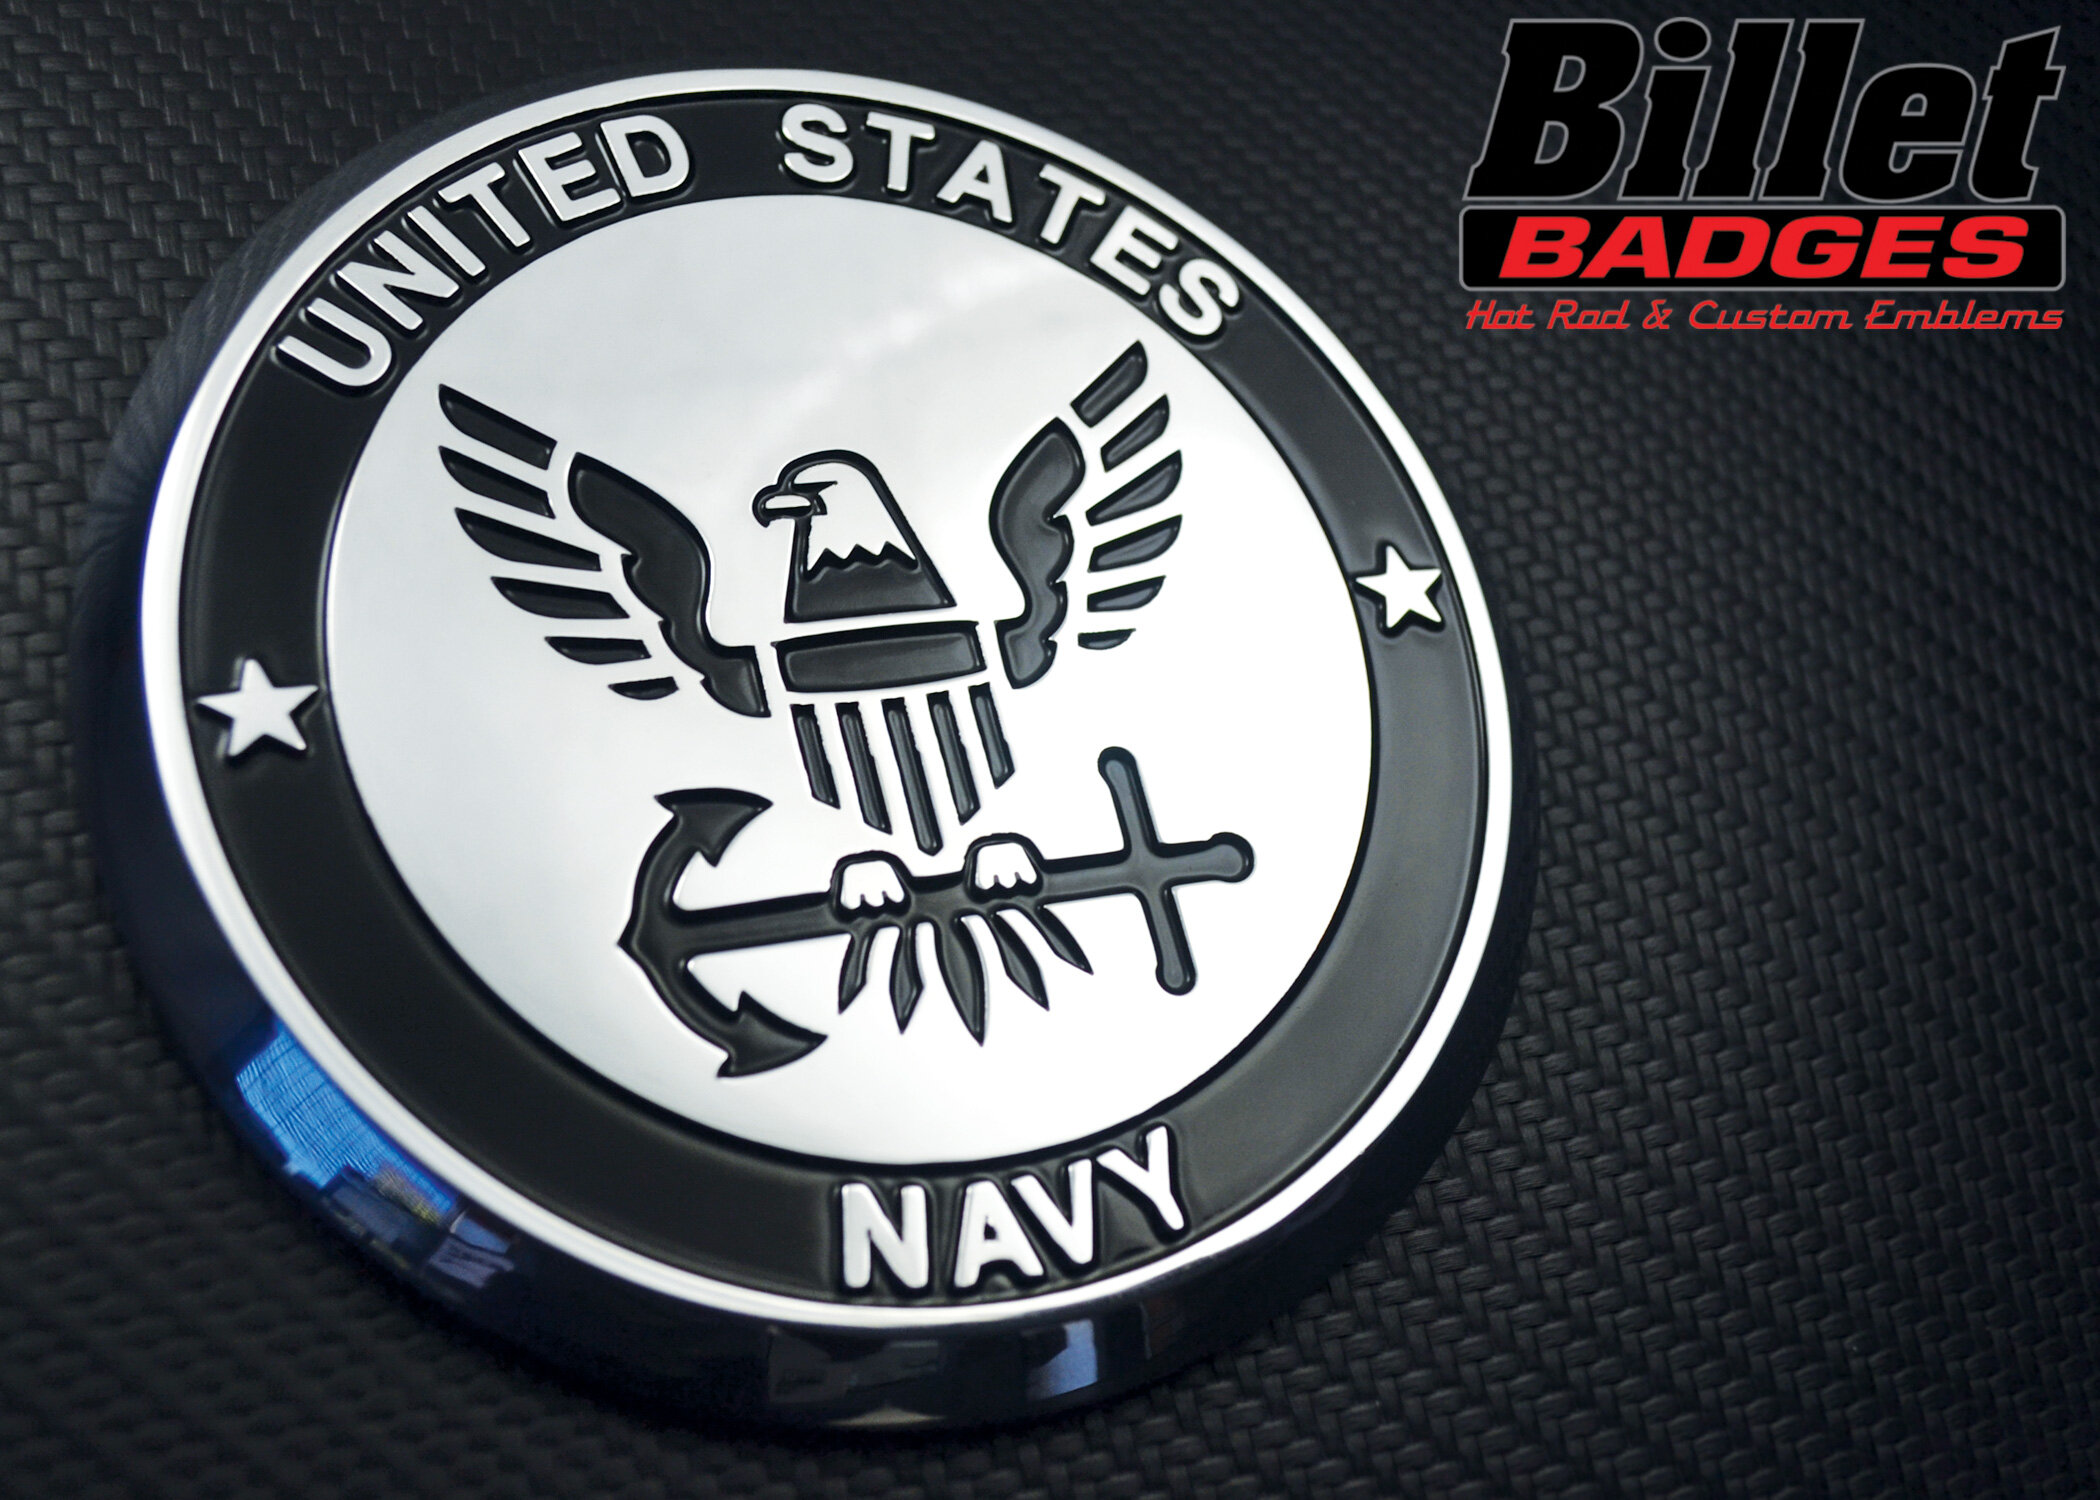 united_states_navy_medallion.jpg